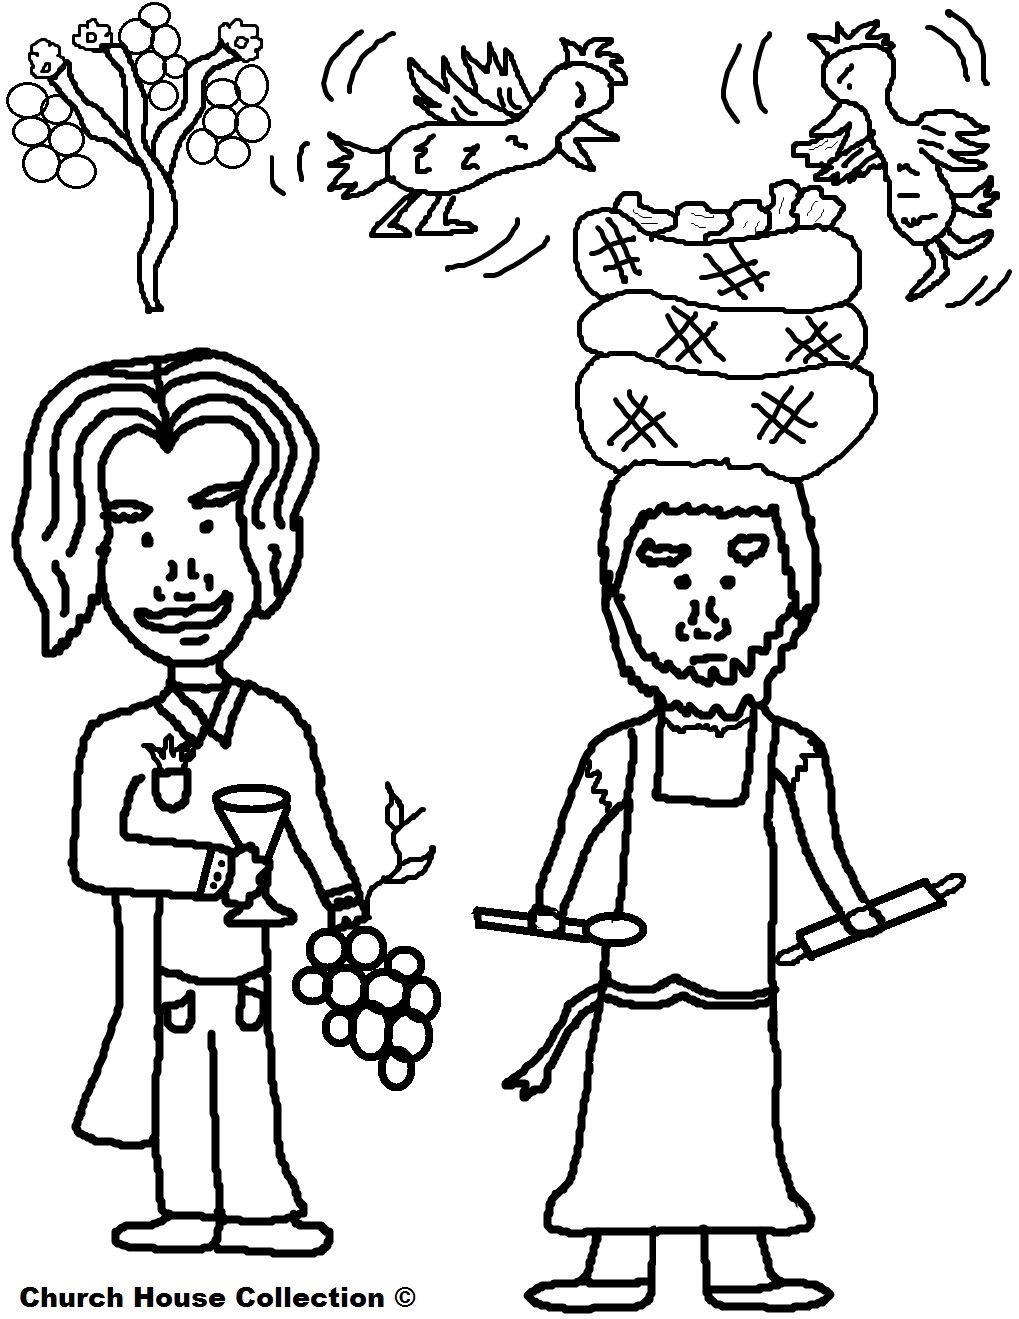 Coloring Pages For Joseph S Dreams : Church house collection butler and baker dreams